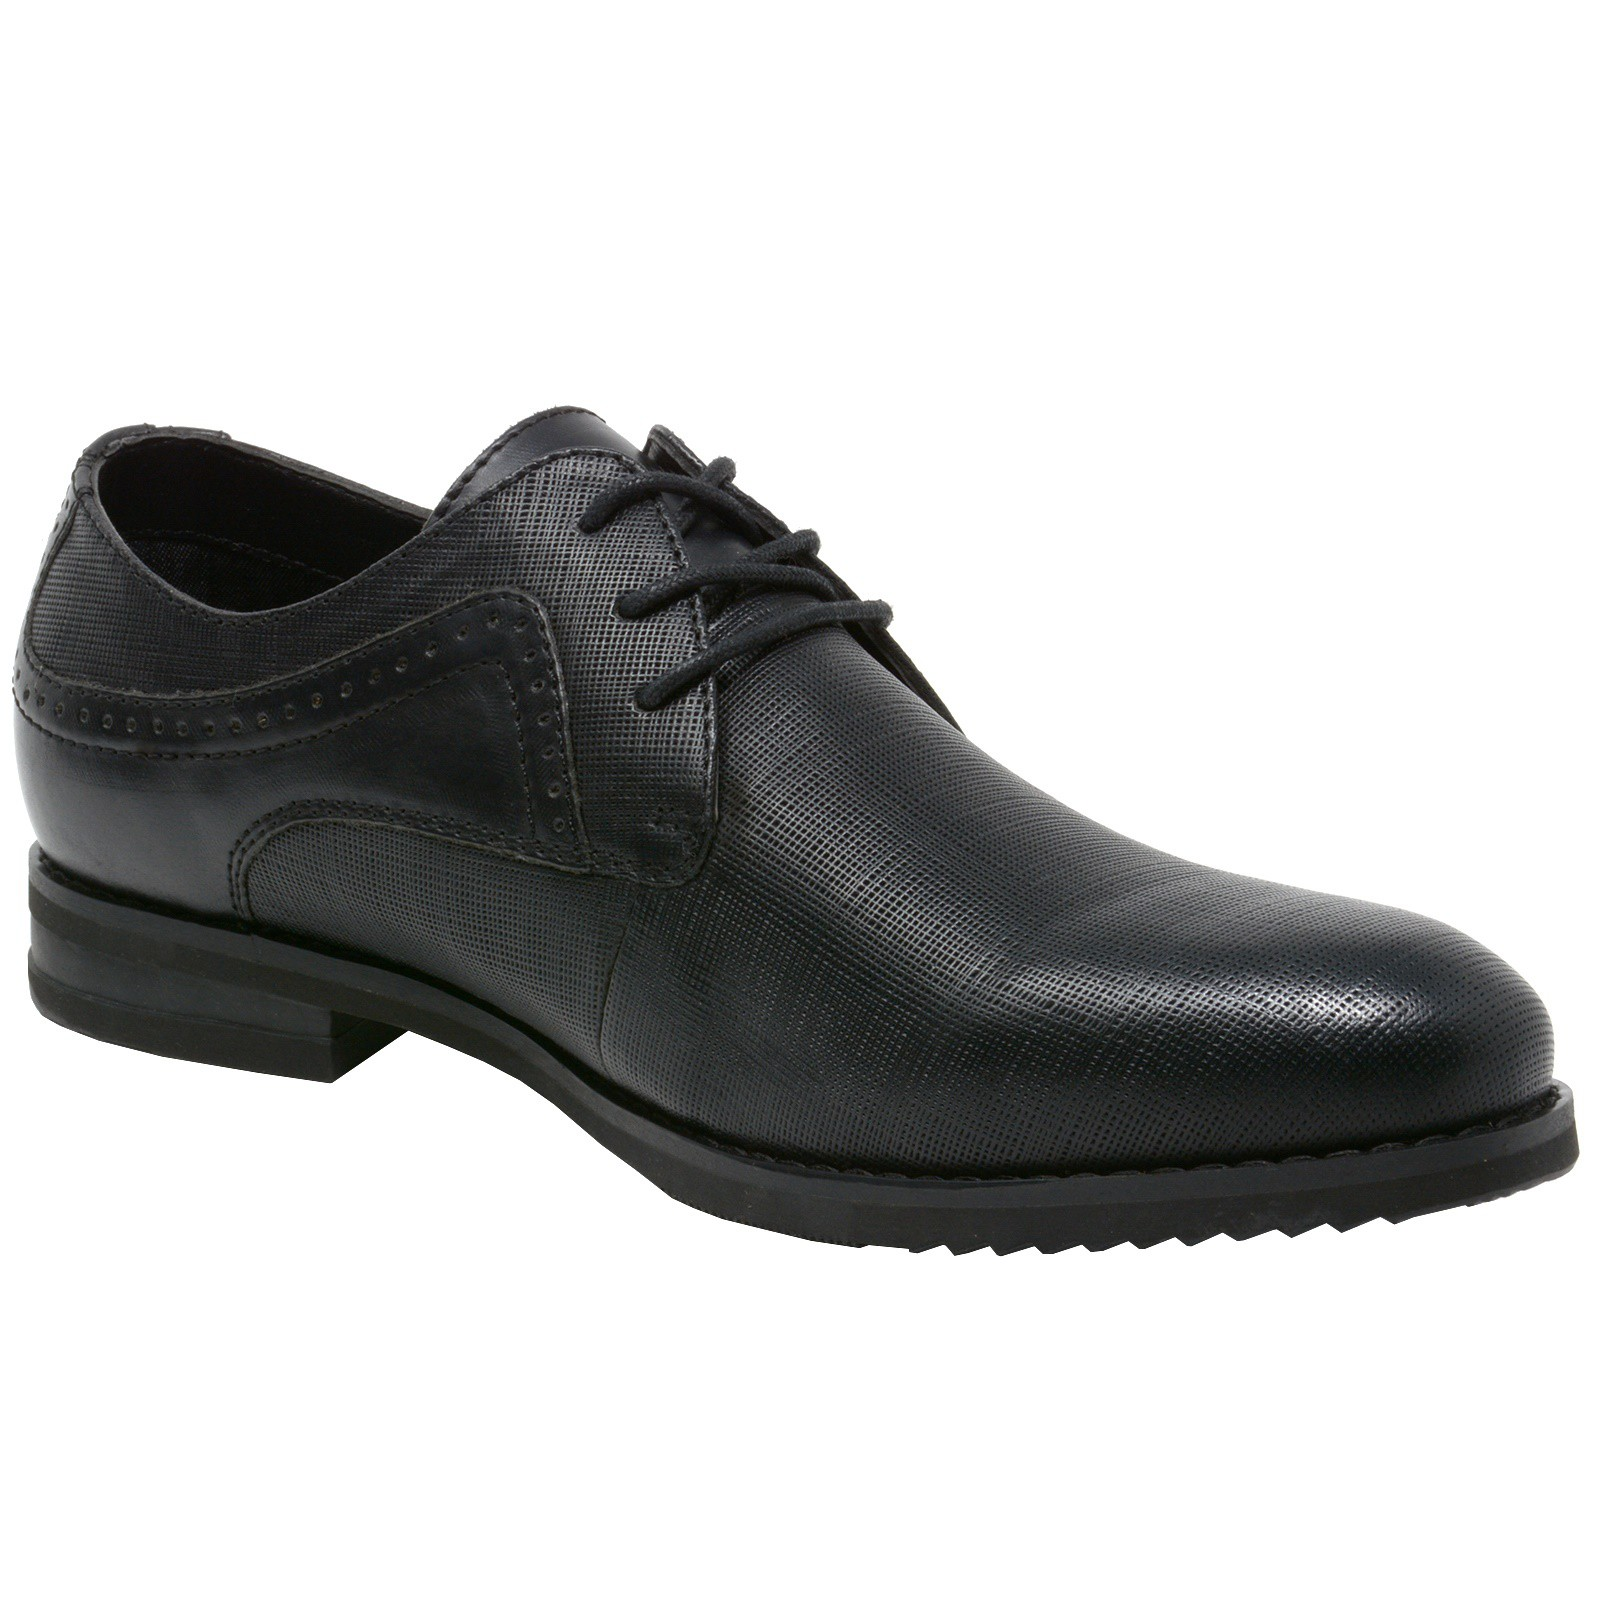 Double-Diamond-by-Alpine-Swiss-Mens-Saffiano-Leather-Lace-Up-Oxford-Dress-Shoes thumbnail 13